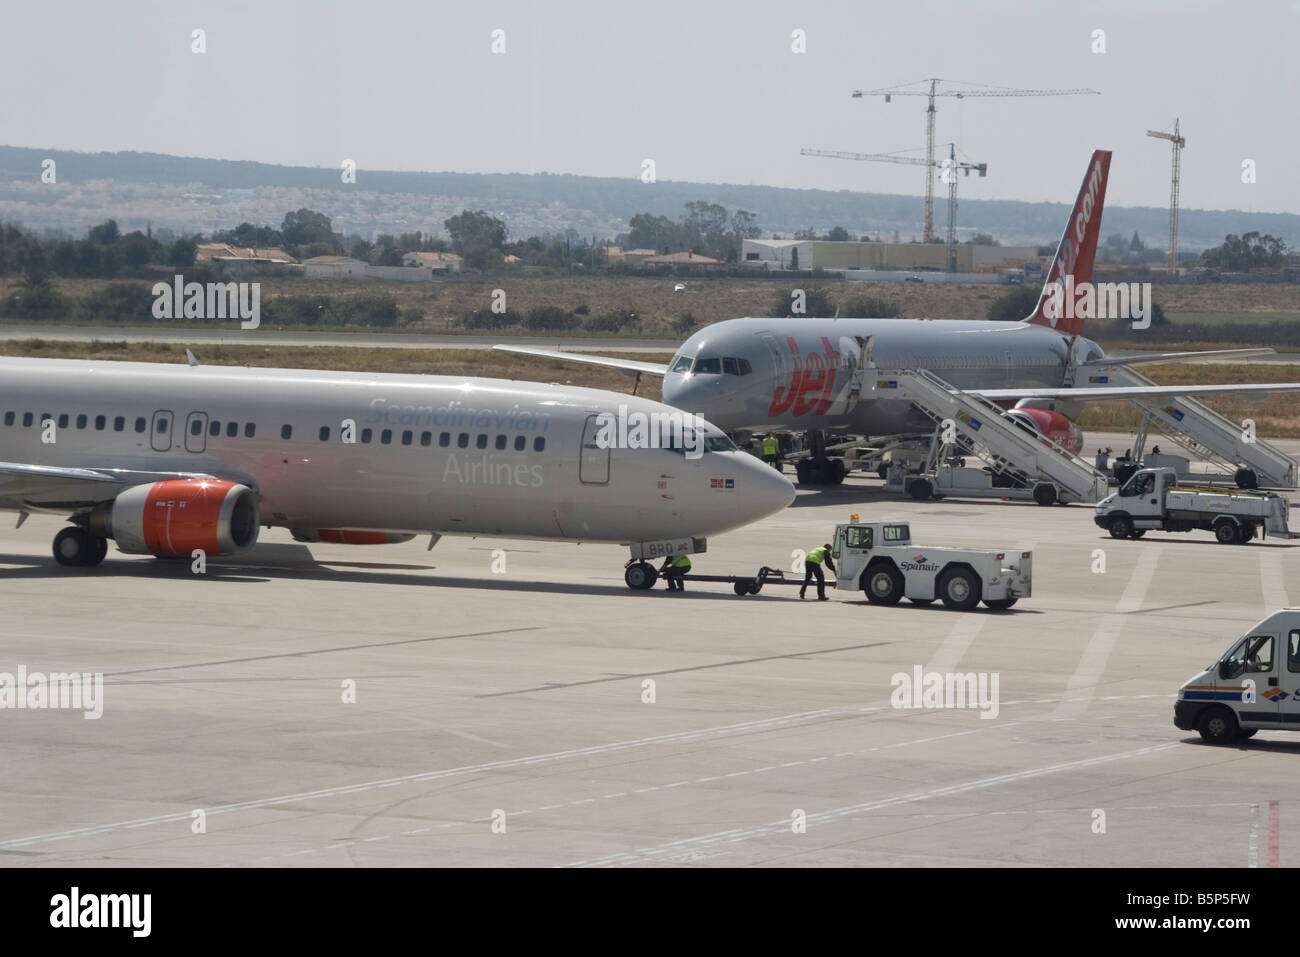 Le personnel au sol de travailler sur un avion et Scandinavian Airlines un Jet2 com avion sur le tarmac de l'aéroport Photo Stock